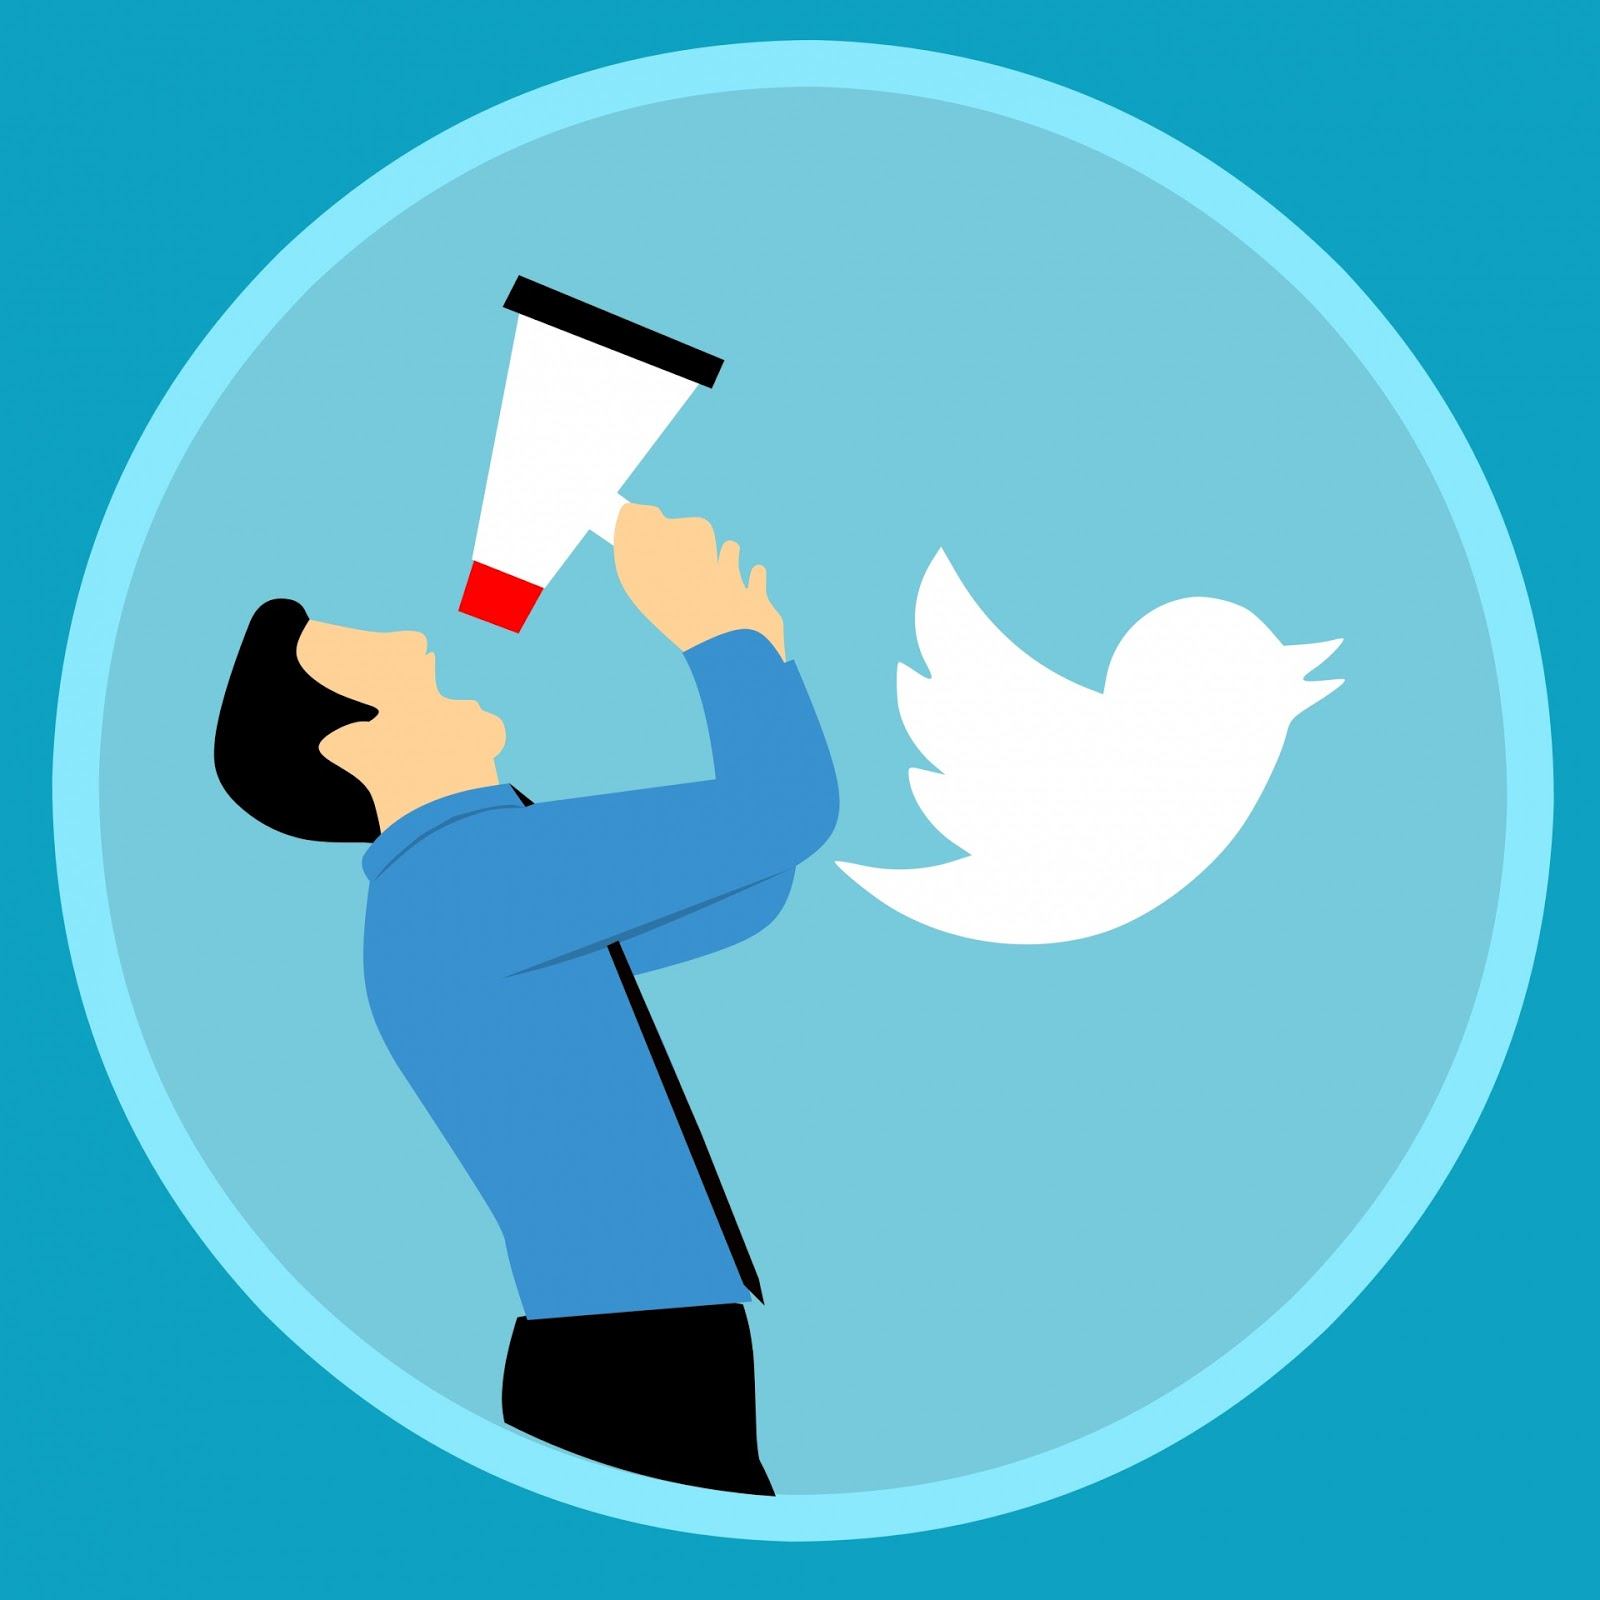 who is online on twitter